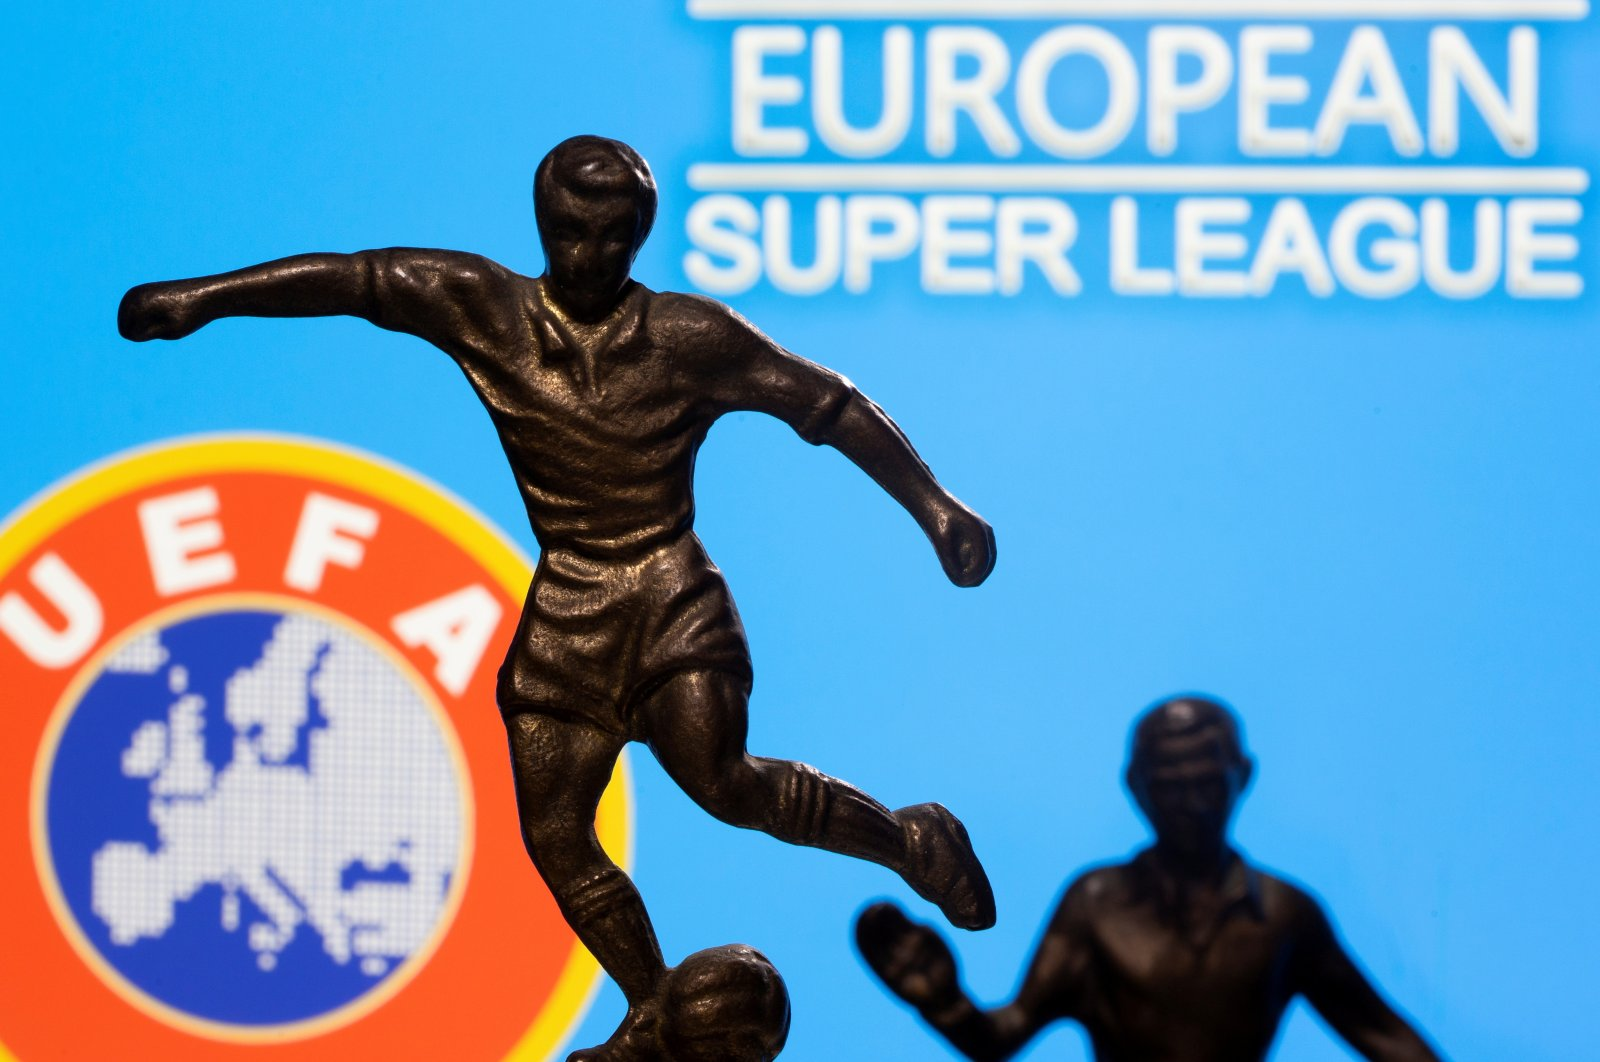 """Metal figures of football players are seen in front of the words """"European Super League"""" and the UEFA logo in this illustration, April 20, 2021. (Reuters Photo)"""